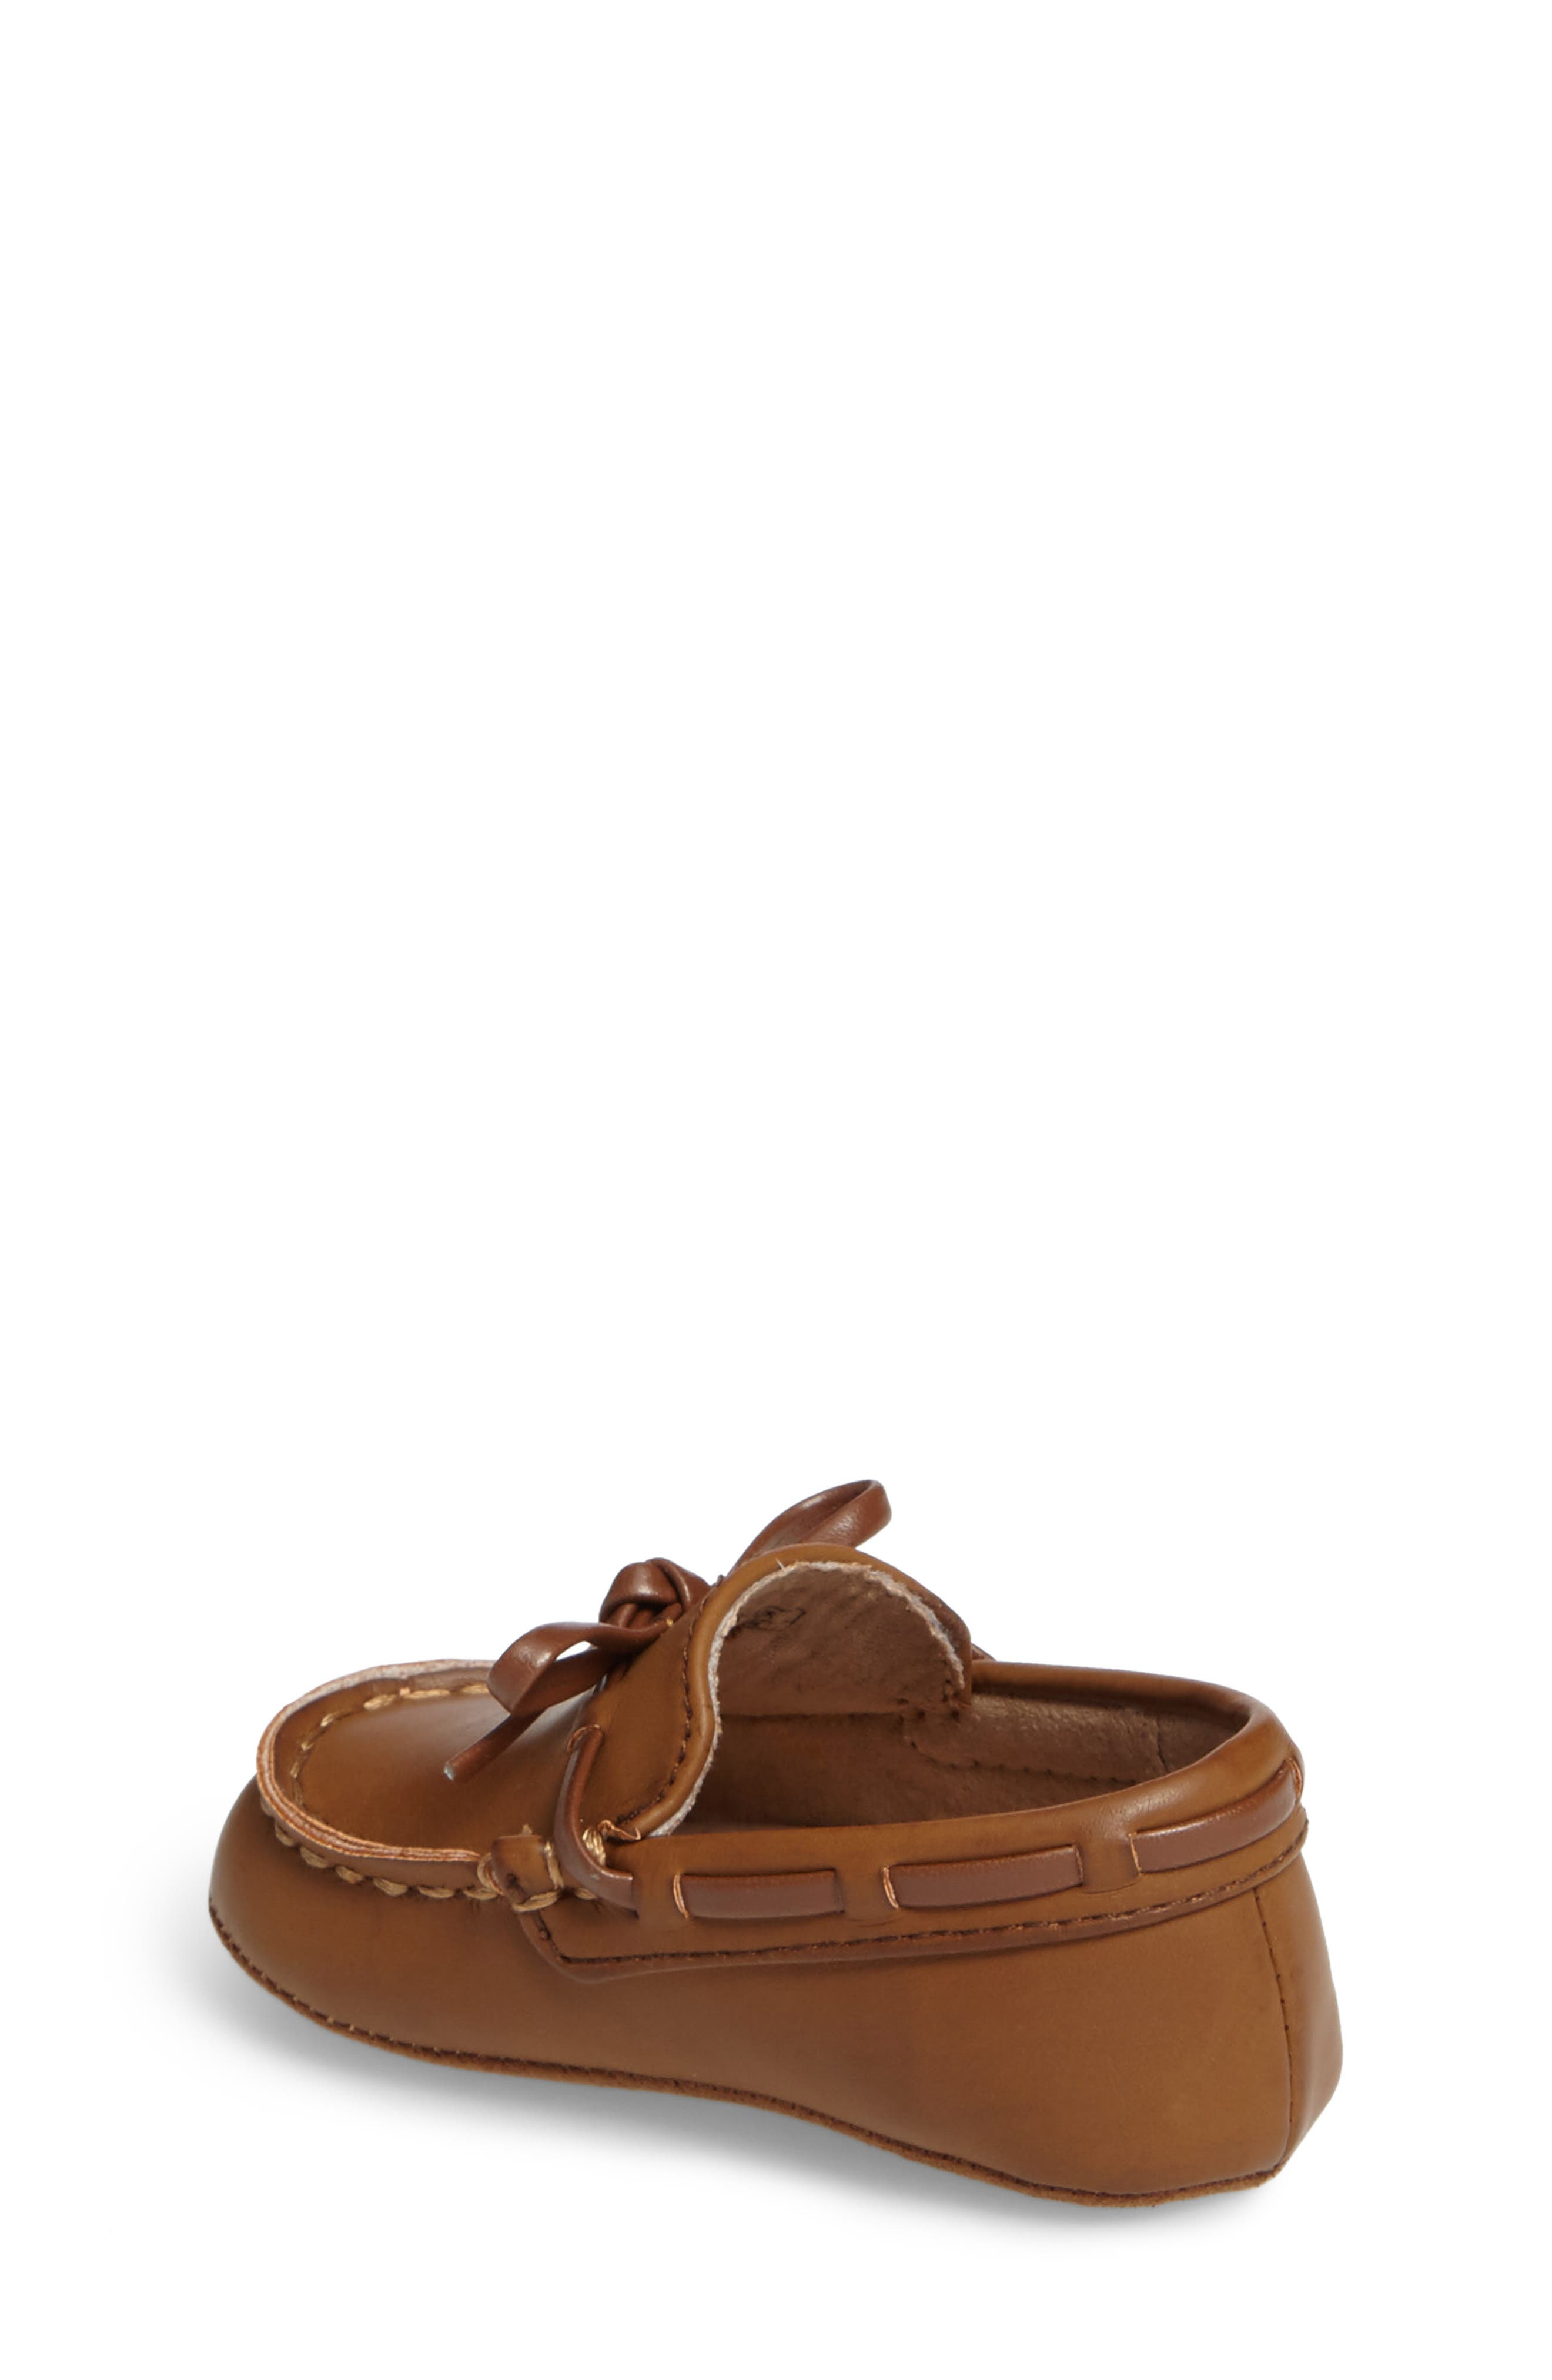 KENNETH COLE NEW YORK,                             Baby Boat Shoe,                             Alternate thumbnail 2, color,                             CARAMEL